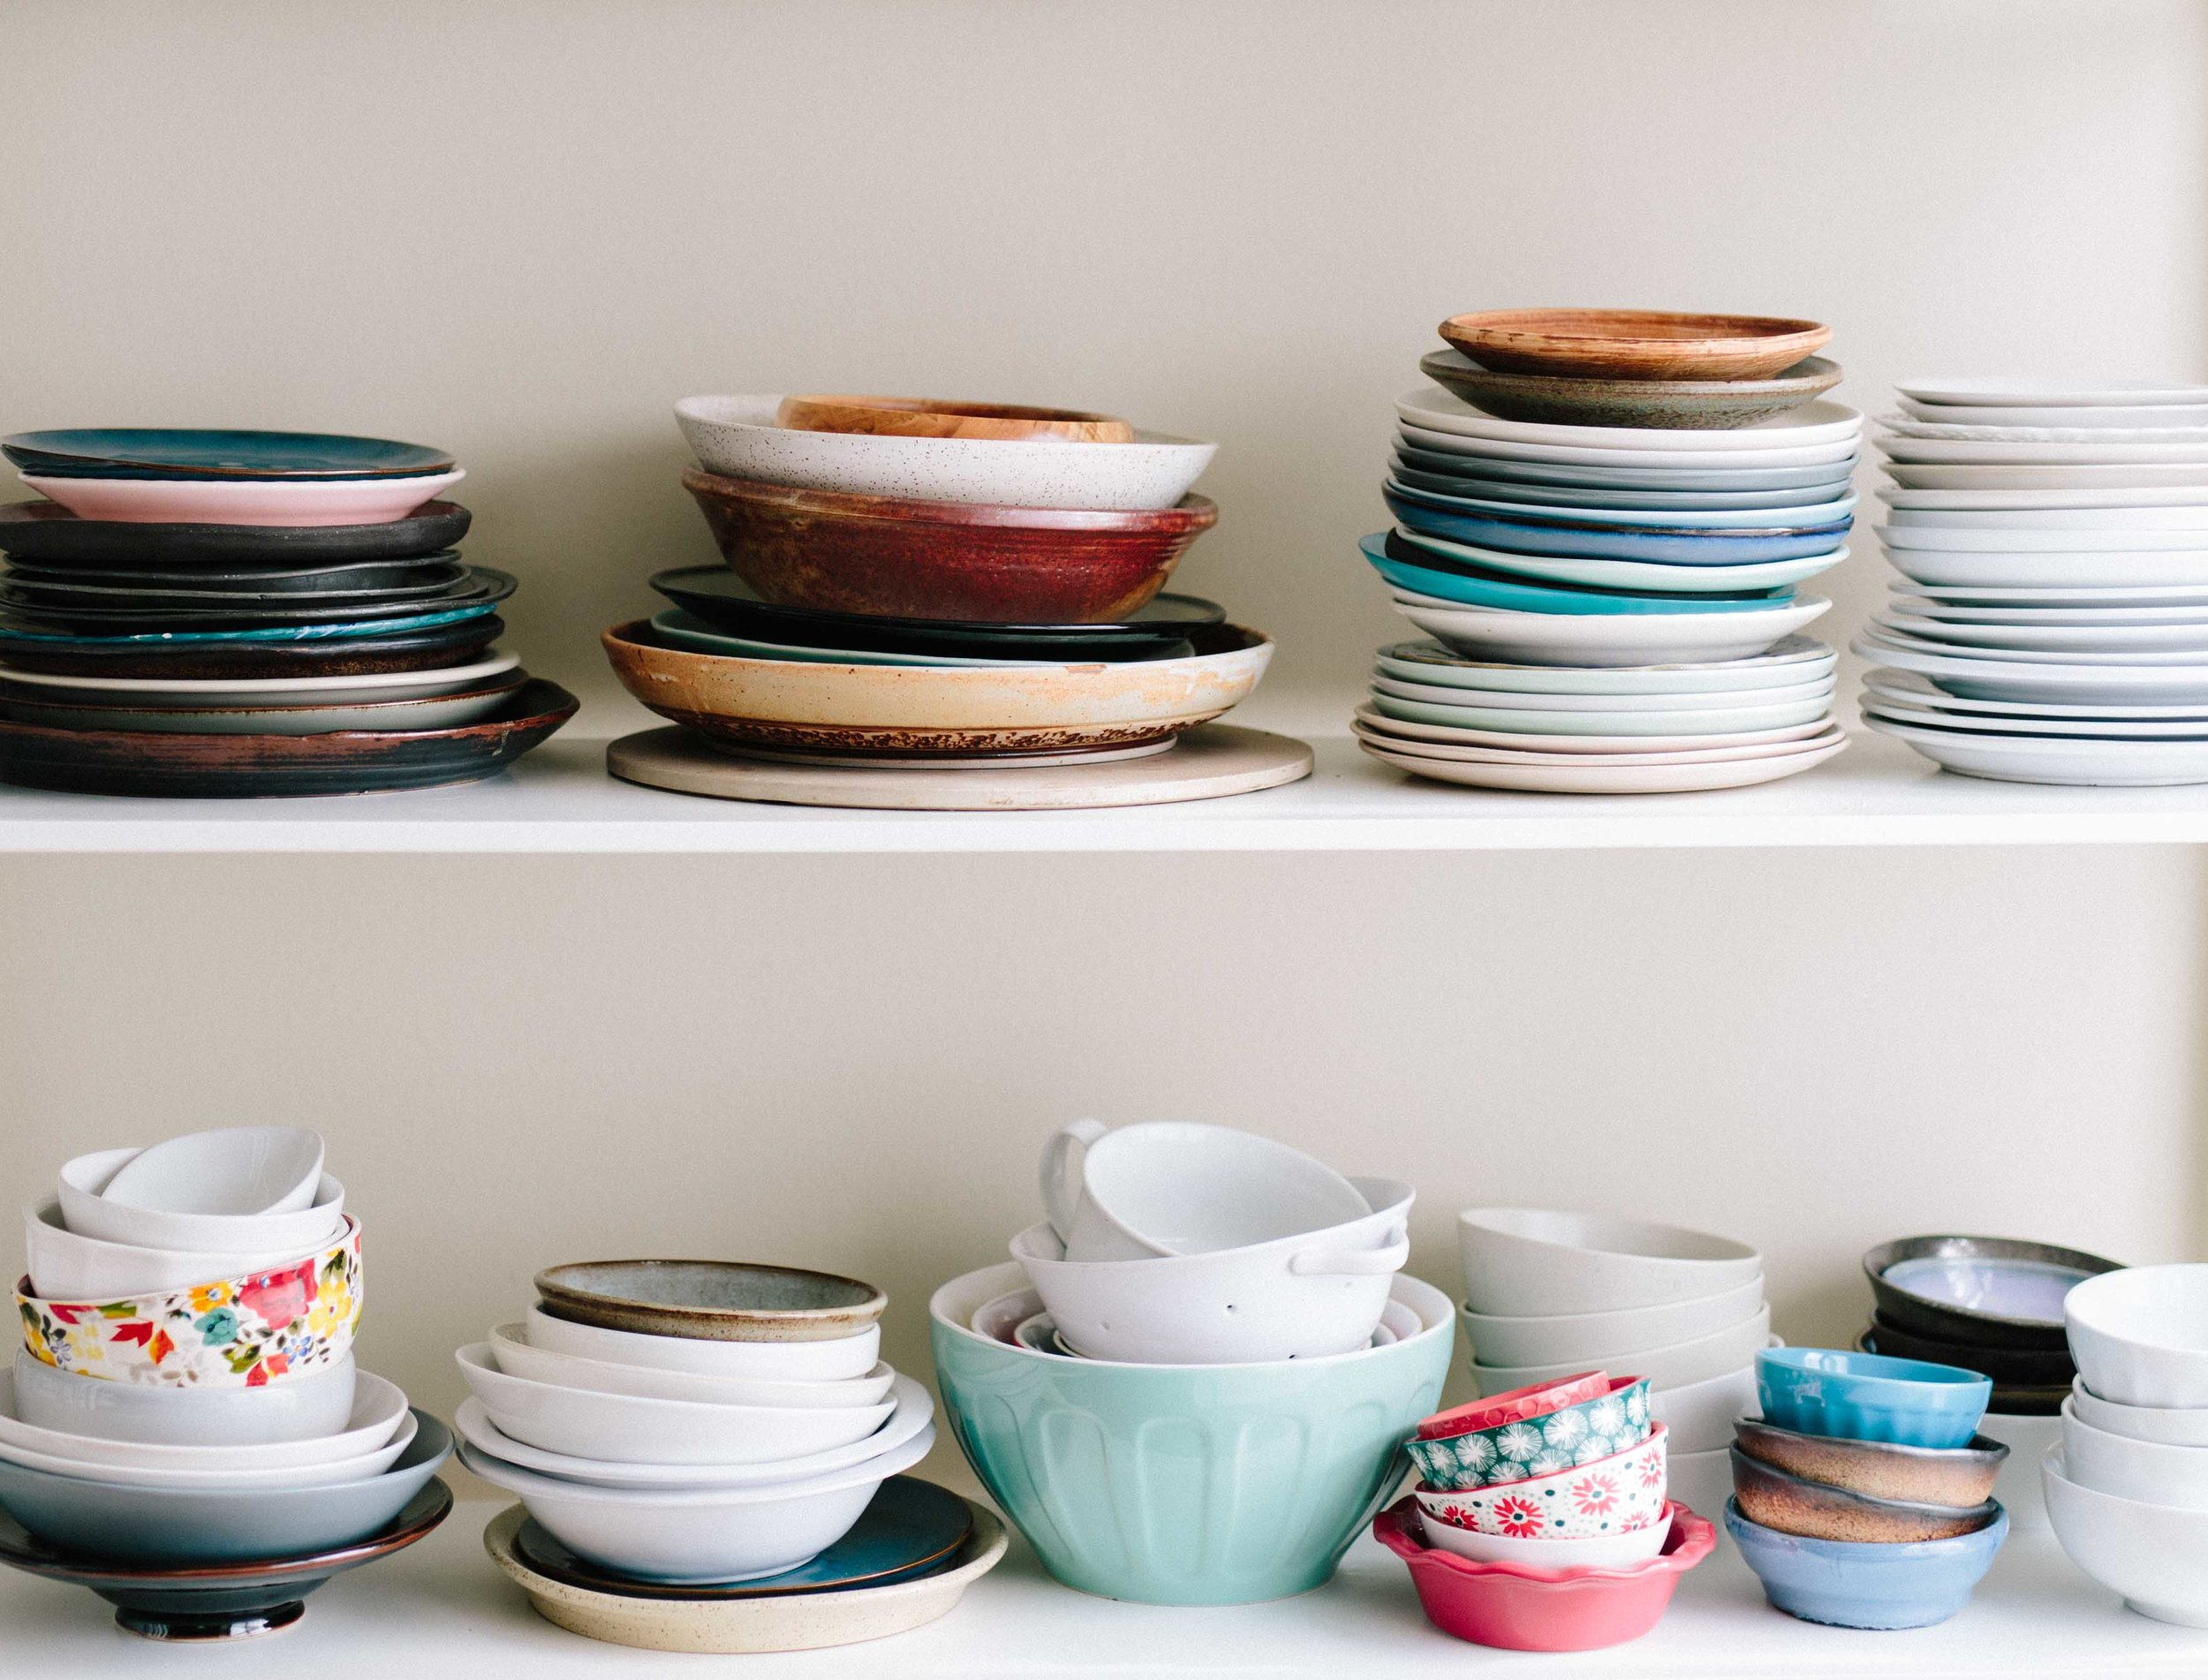 Shelves of dishes ready for packing